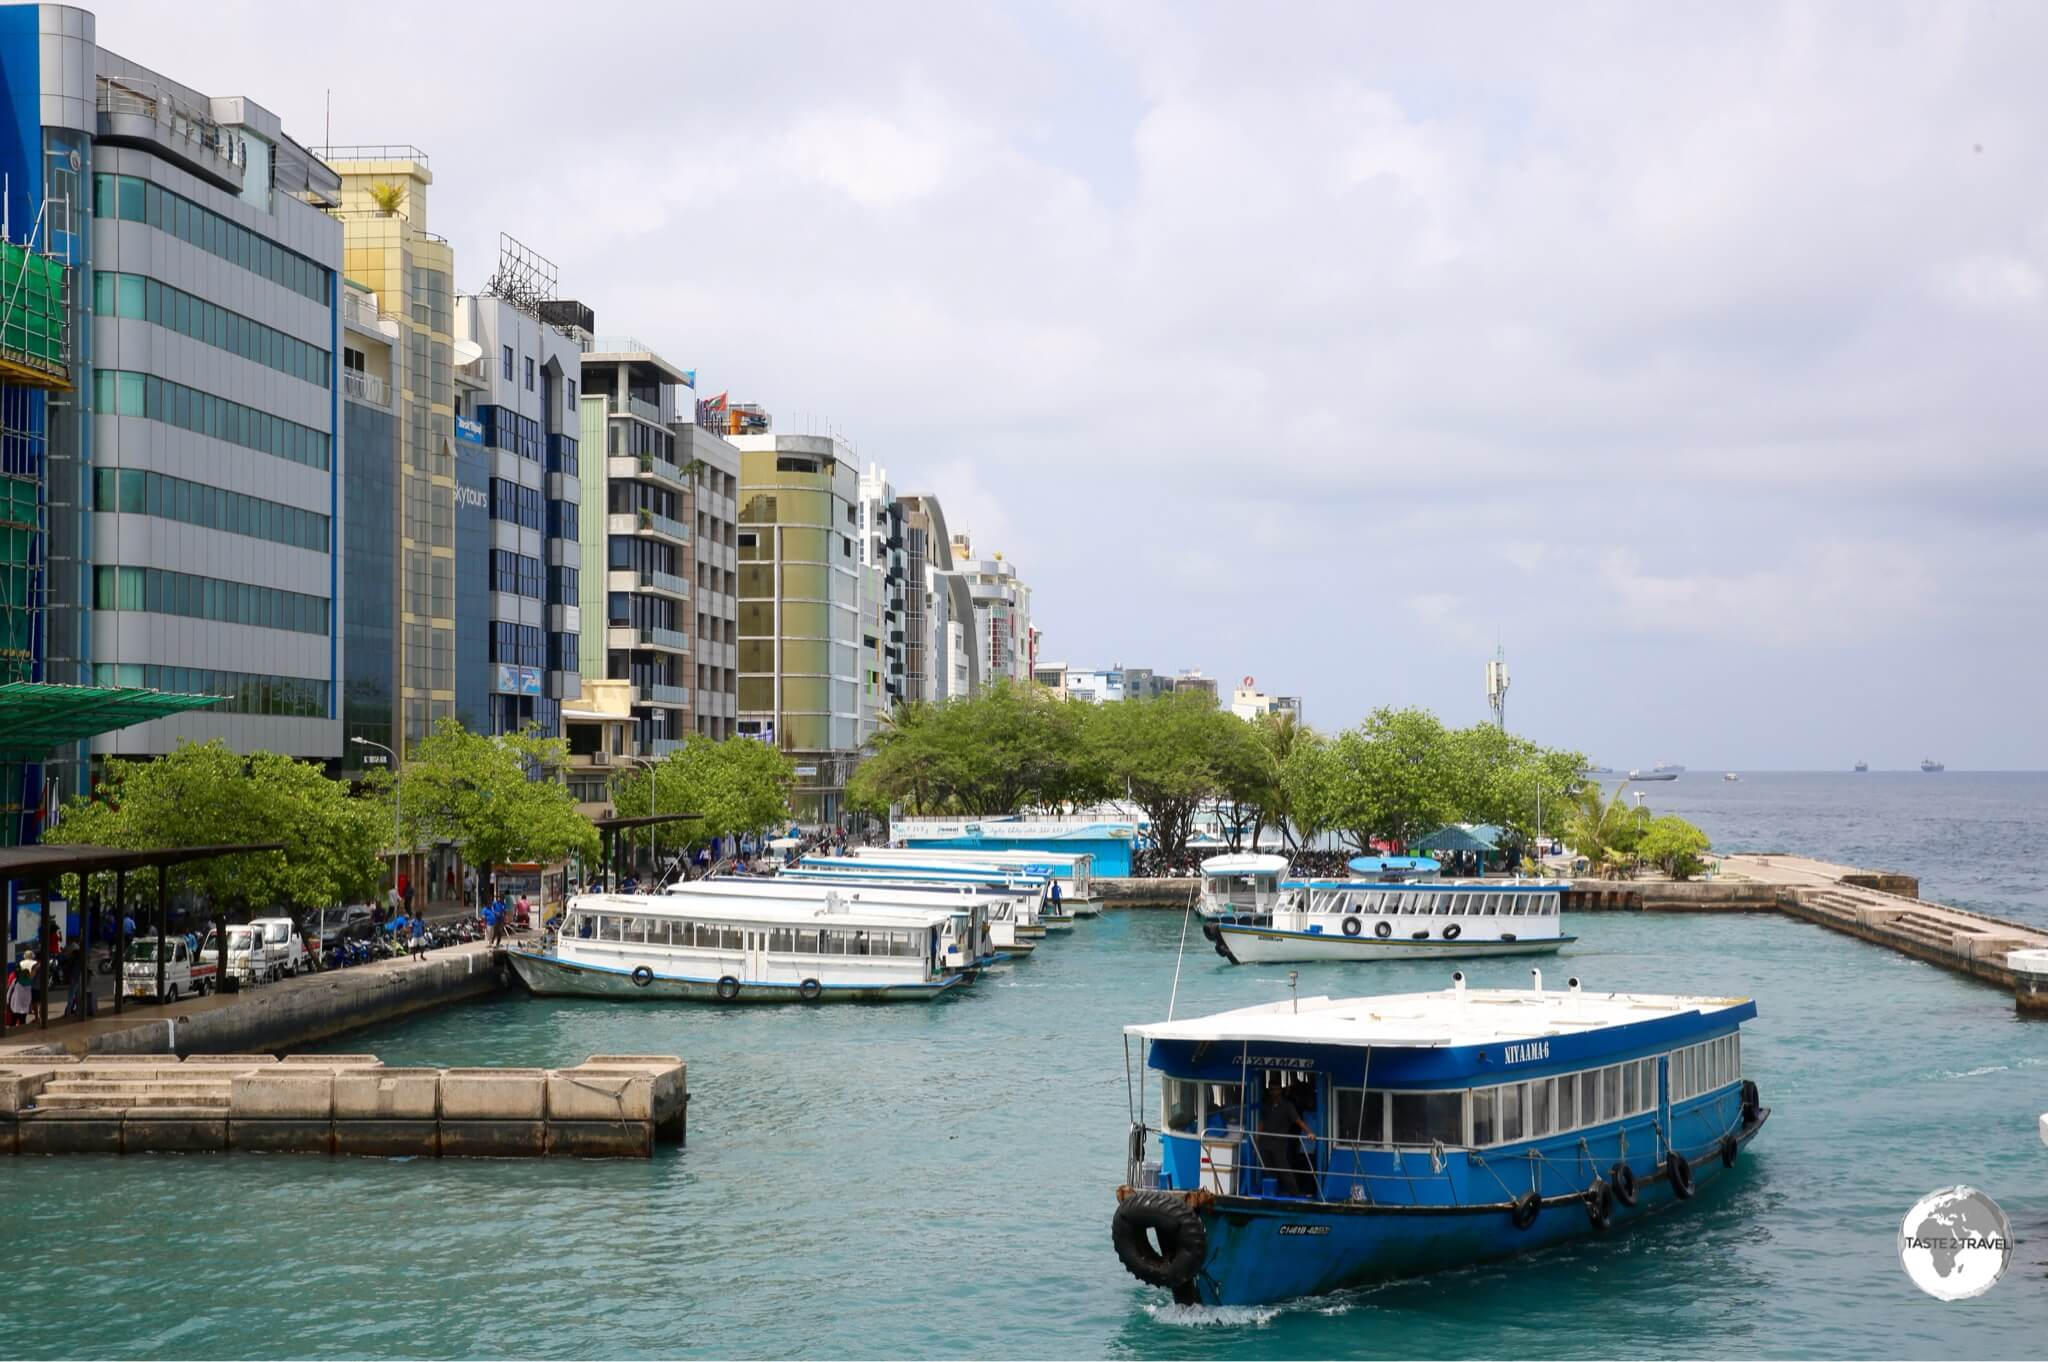 The airport ferry dock and waterfront in downtown Malé.